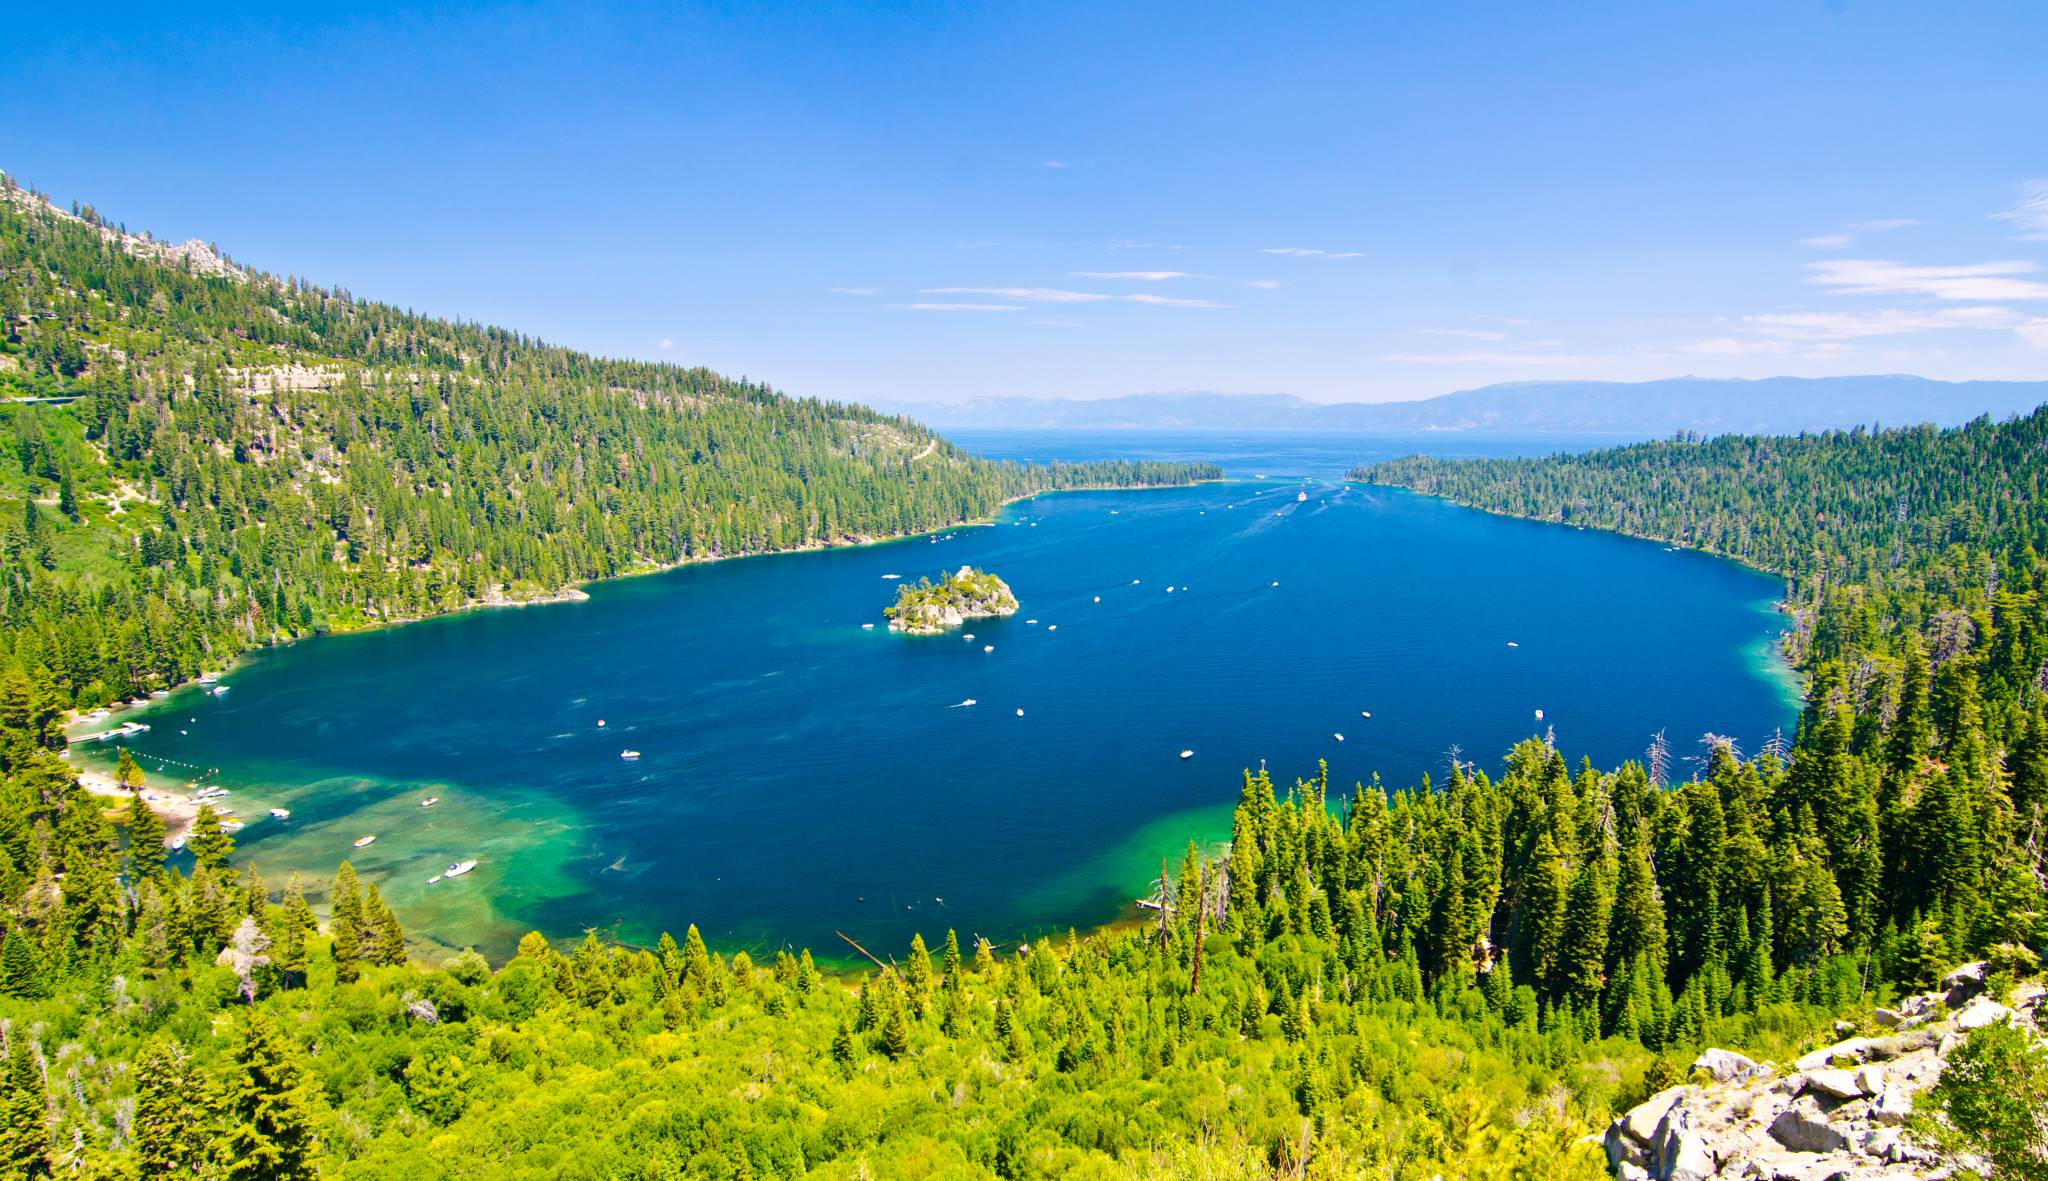 Lake Tahoe Travel Guide for iPhone and iPan